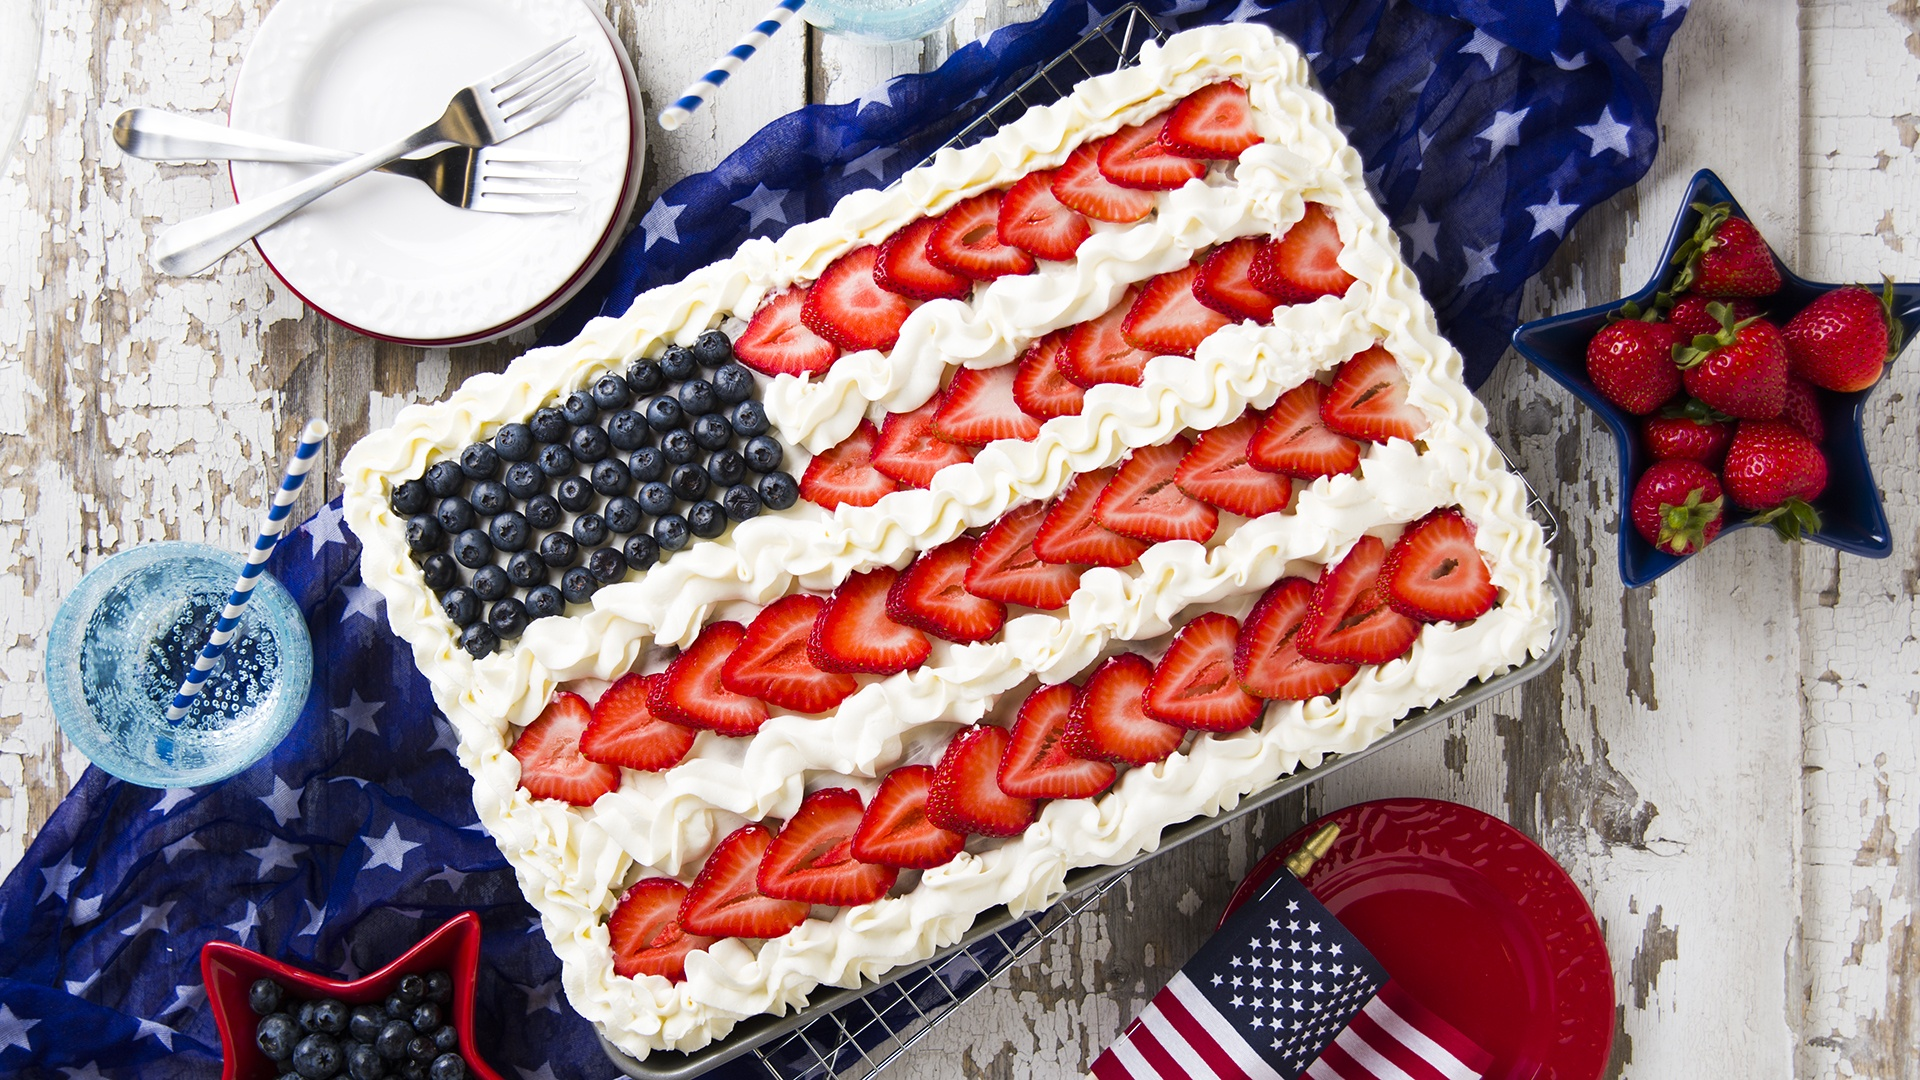 Celebrate Independence Day with this mouthwatering Chocolate Flag Cake sure to leave a lasting impression on your guests!